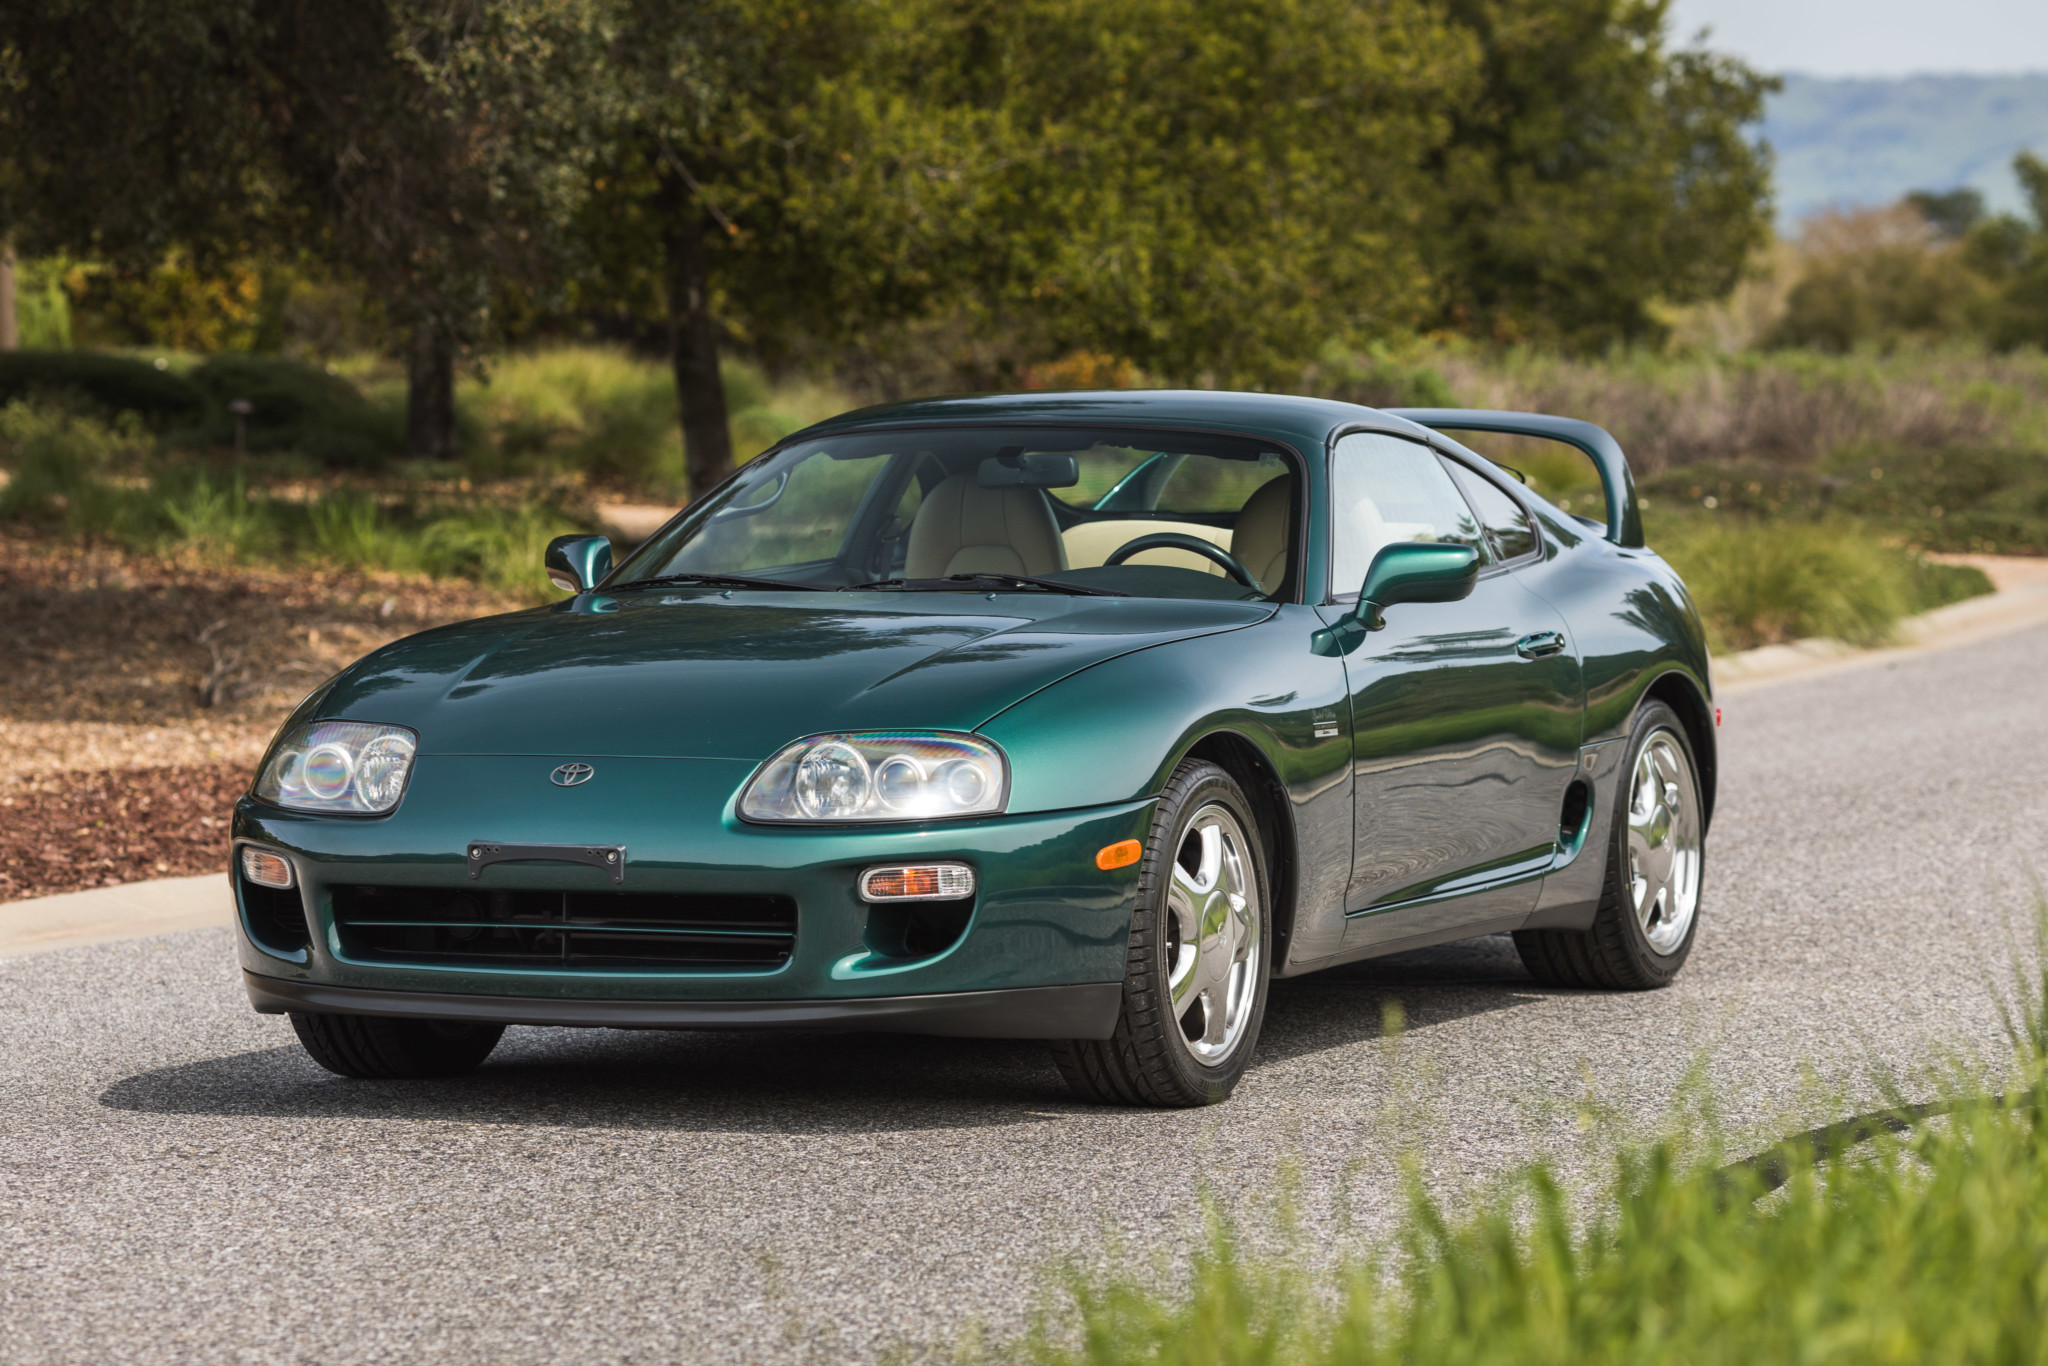 Toyota-Supra-Twin-Turbo-1997-sale-13